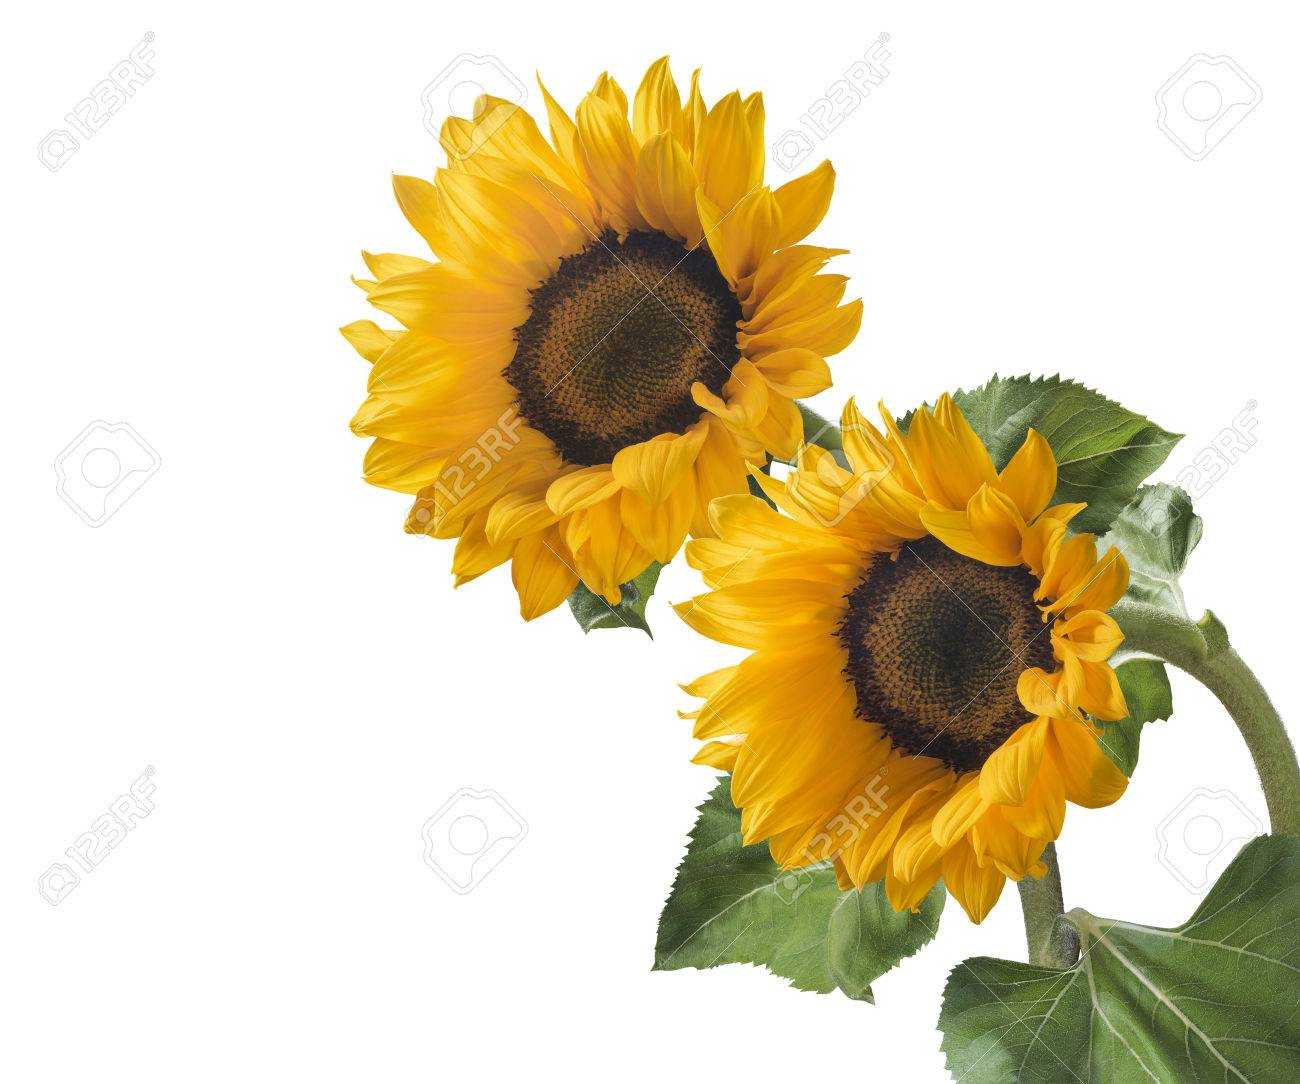 Double sunflower isolated on white background as package design element - 60740690